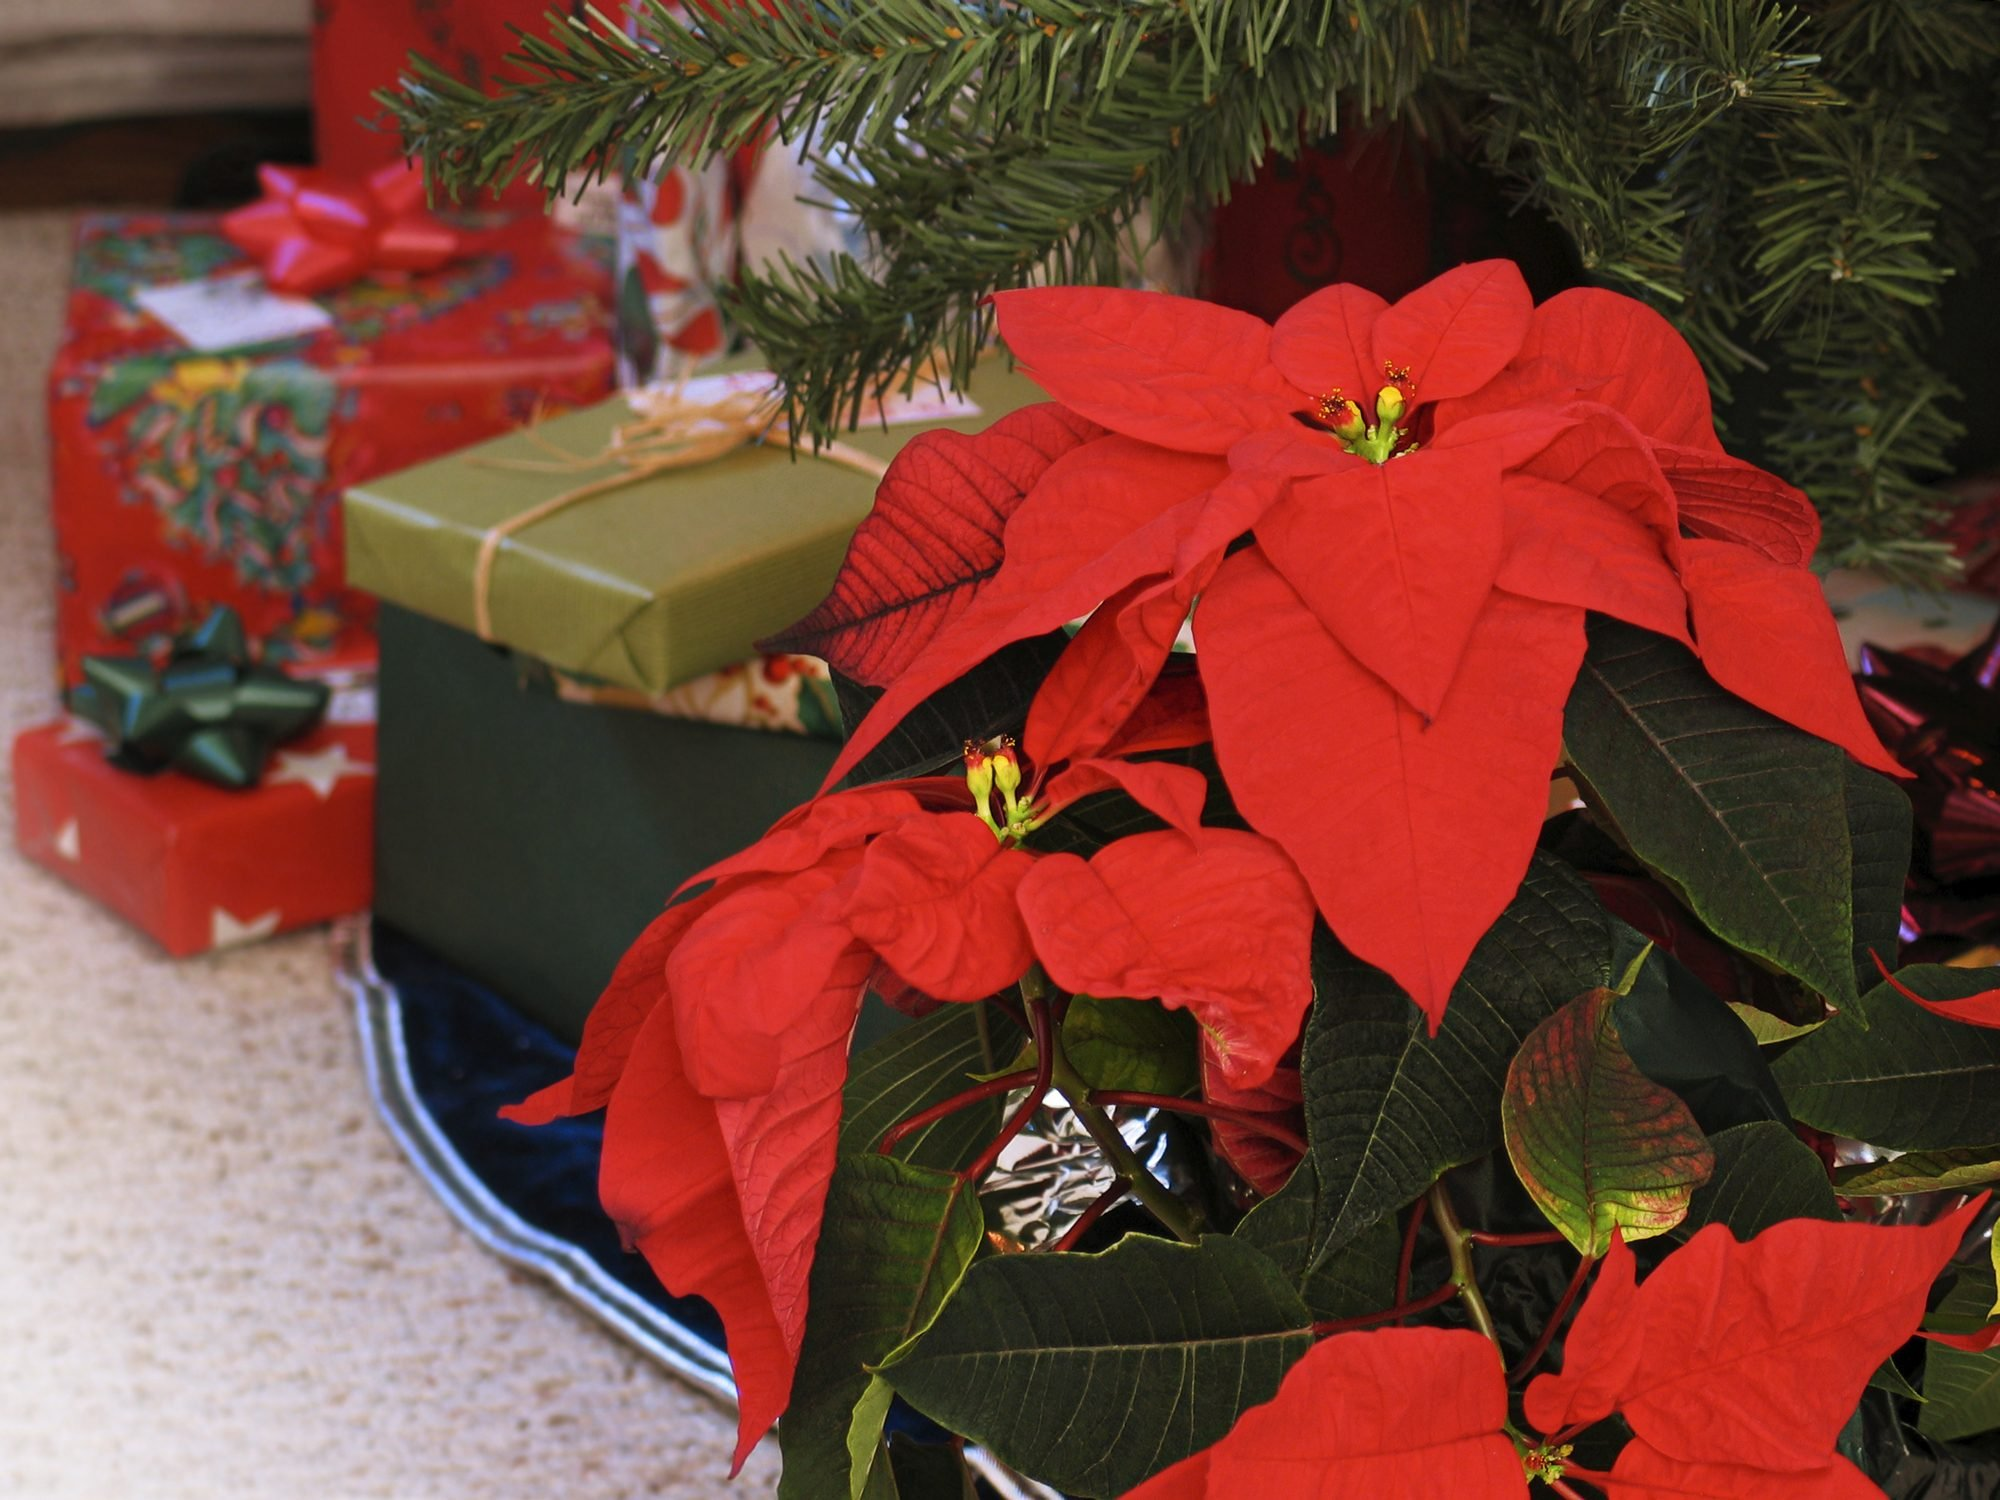 1. Les poinsettias